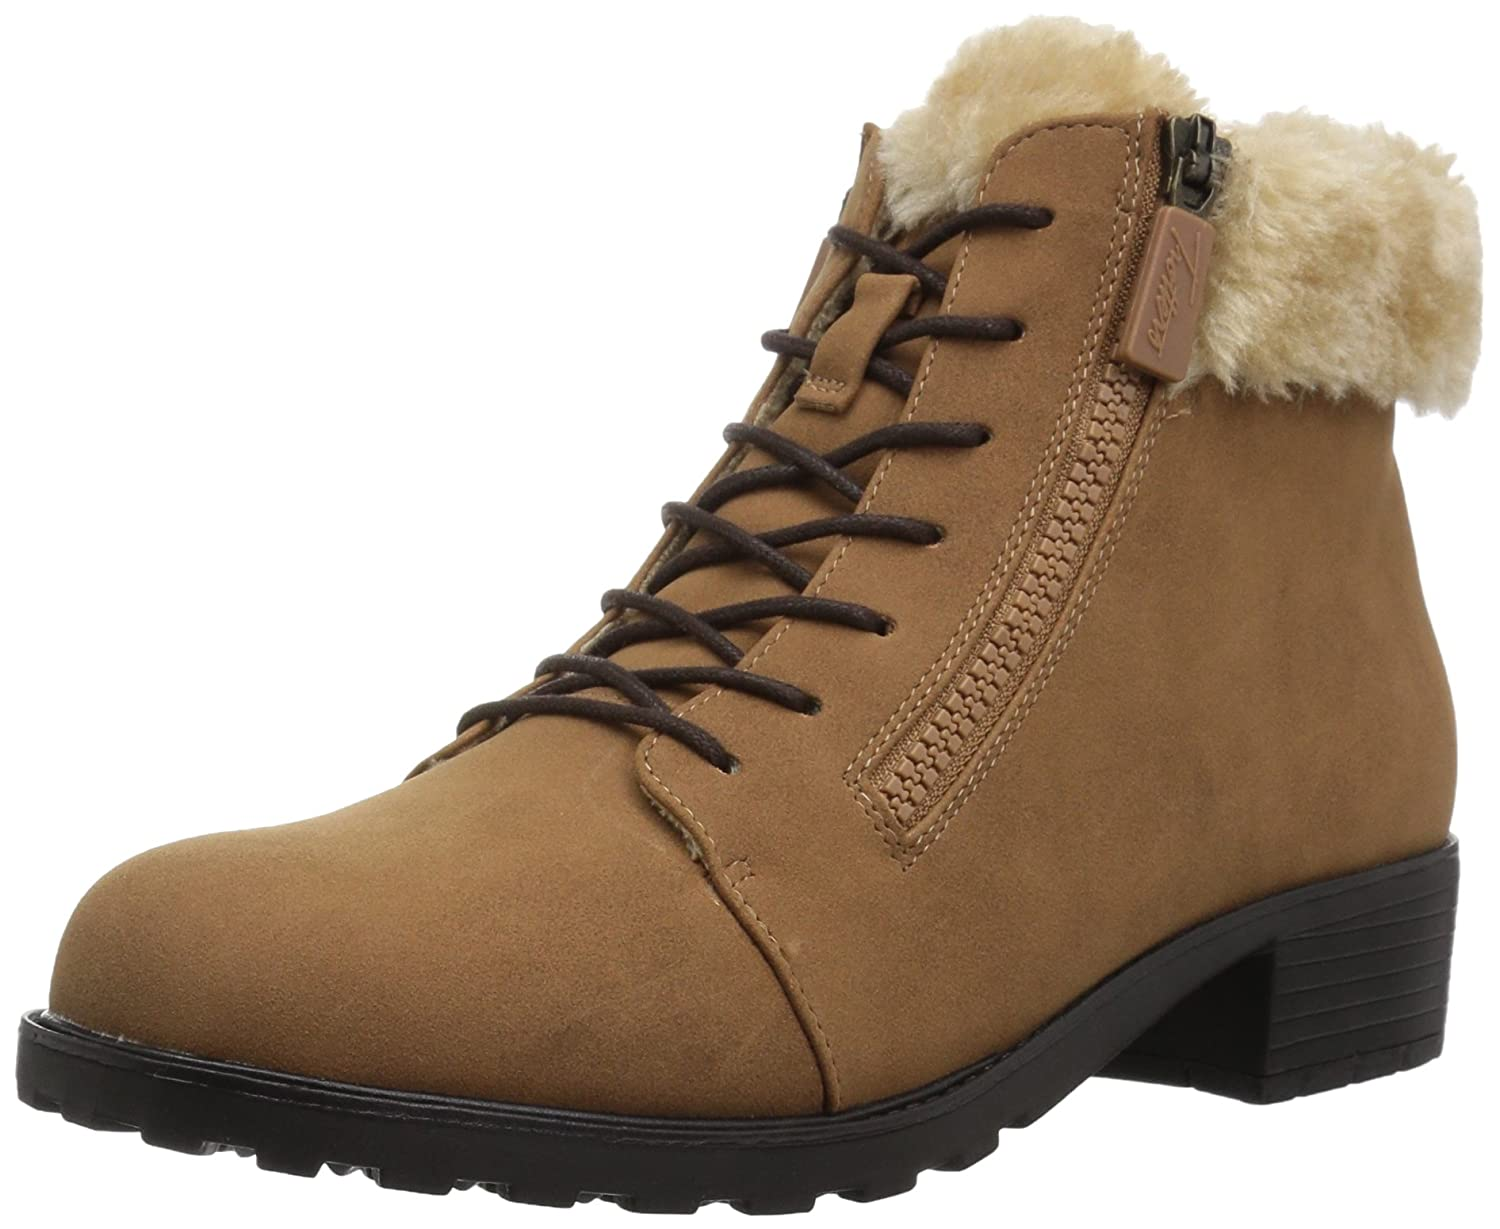 Trotters Women's Below Zero Ankle Bootie B01MT105B9 8 B(M) US|Chestnut/Natural